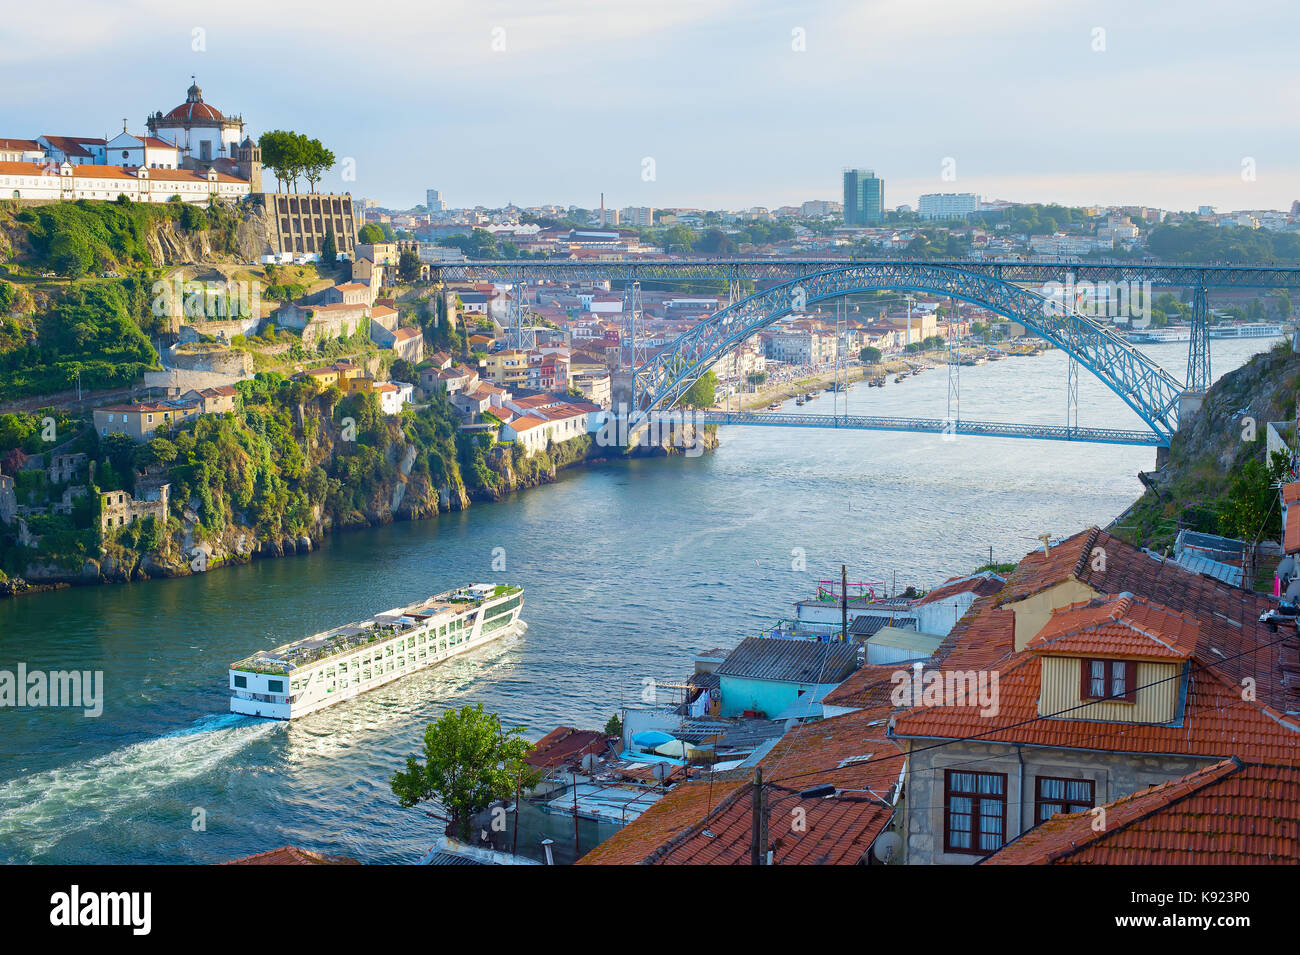 kreuzfahrt schiff kommt nach porto am fluss douro portugal stockfoto bild 160472088 alamy. Black Bedroom Furniture Sets. Home Design Ideas